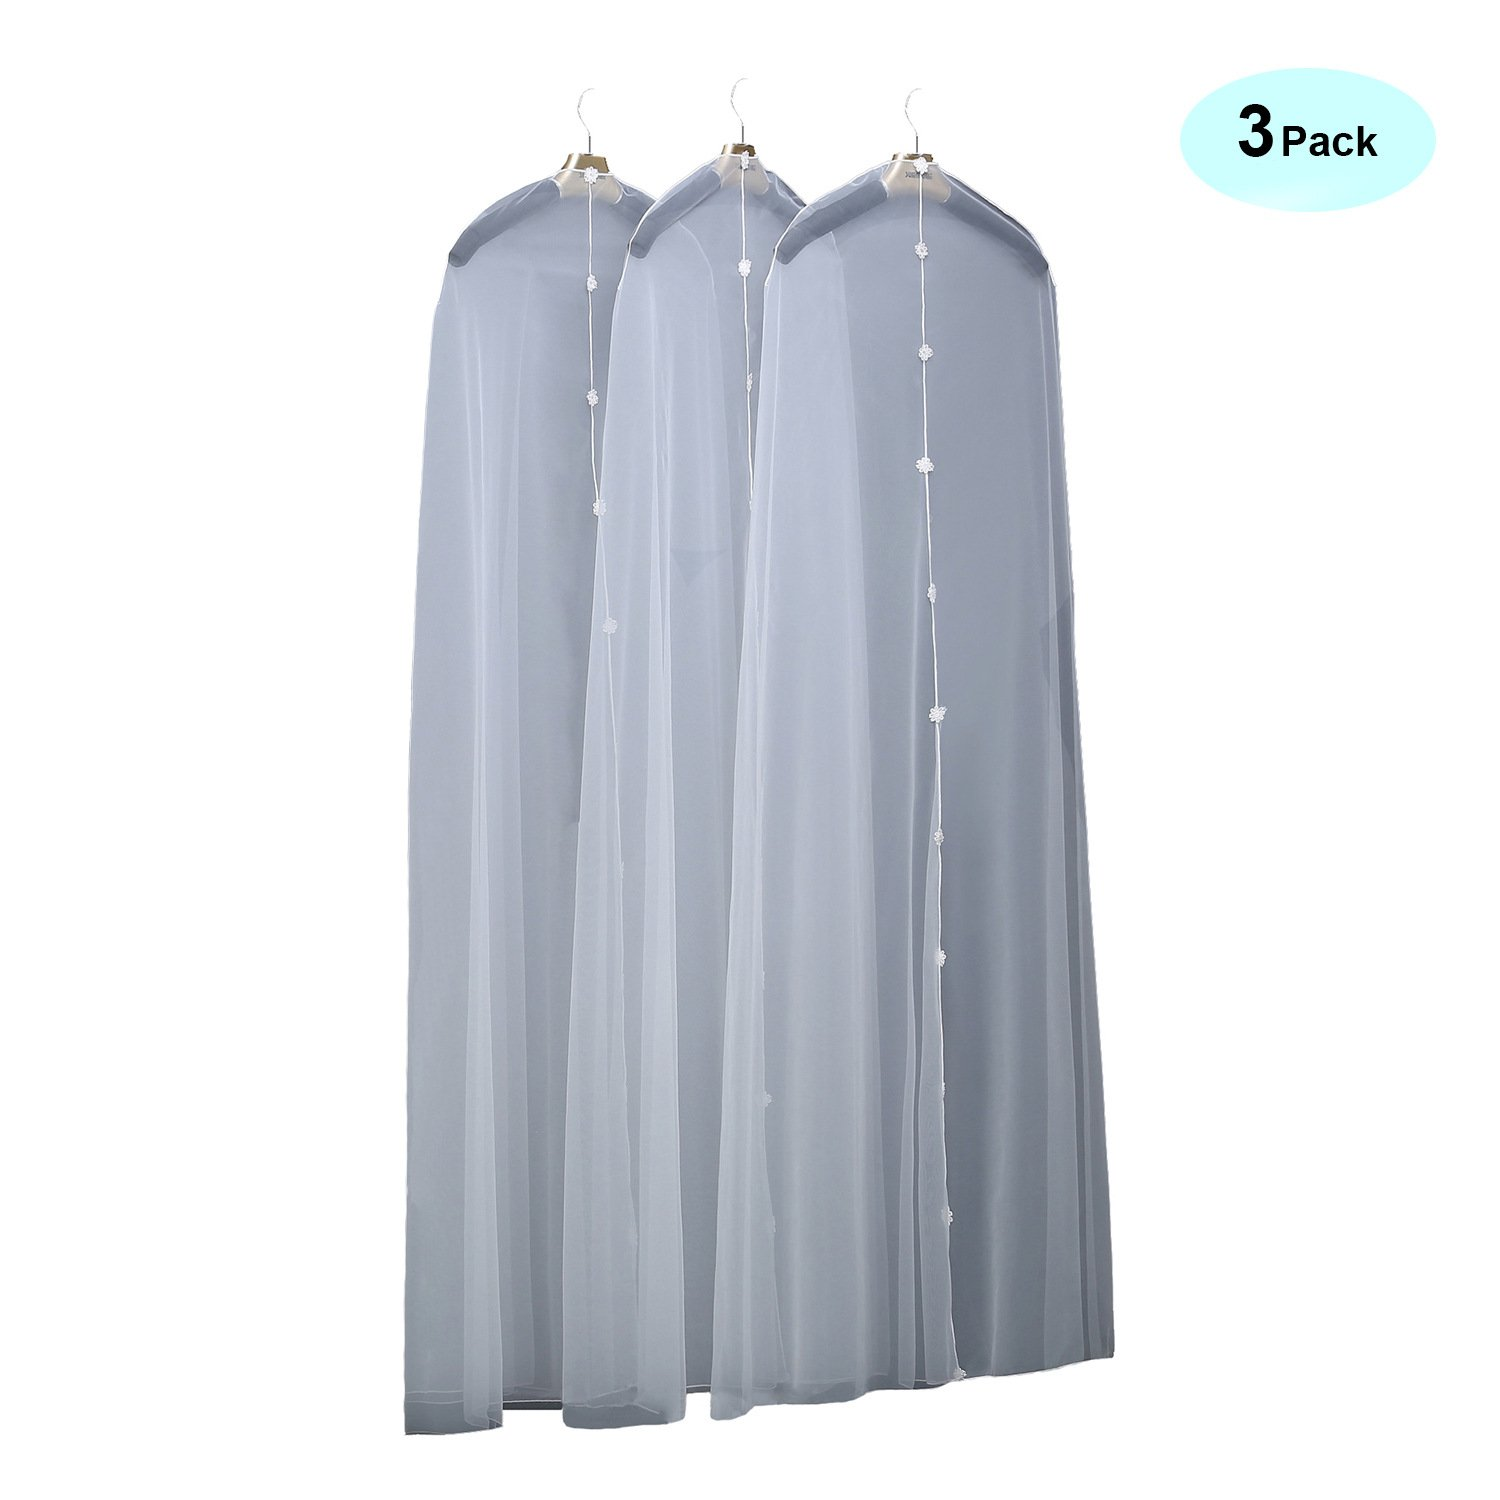 Chadox White Garment Bags for Long Dress Transparent Tulle Dust Cover for Clothes